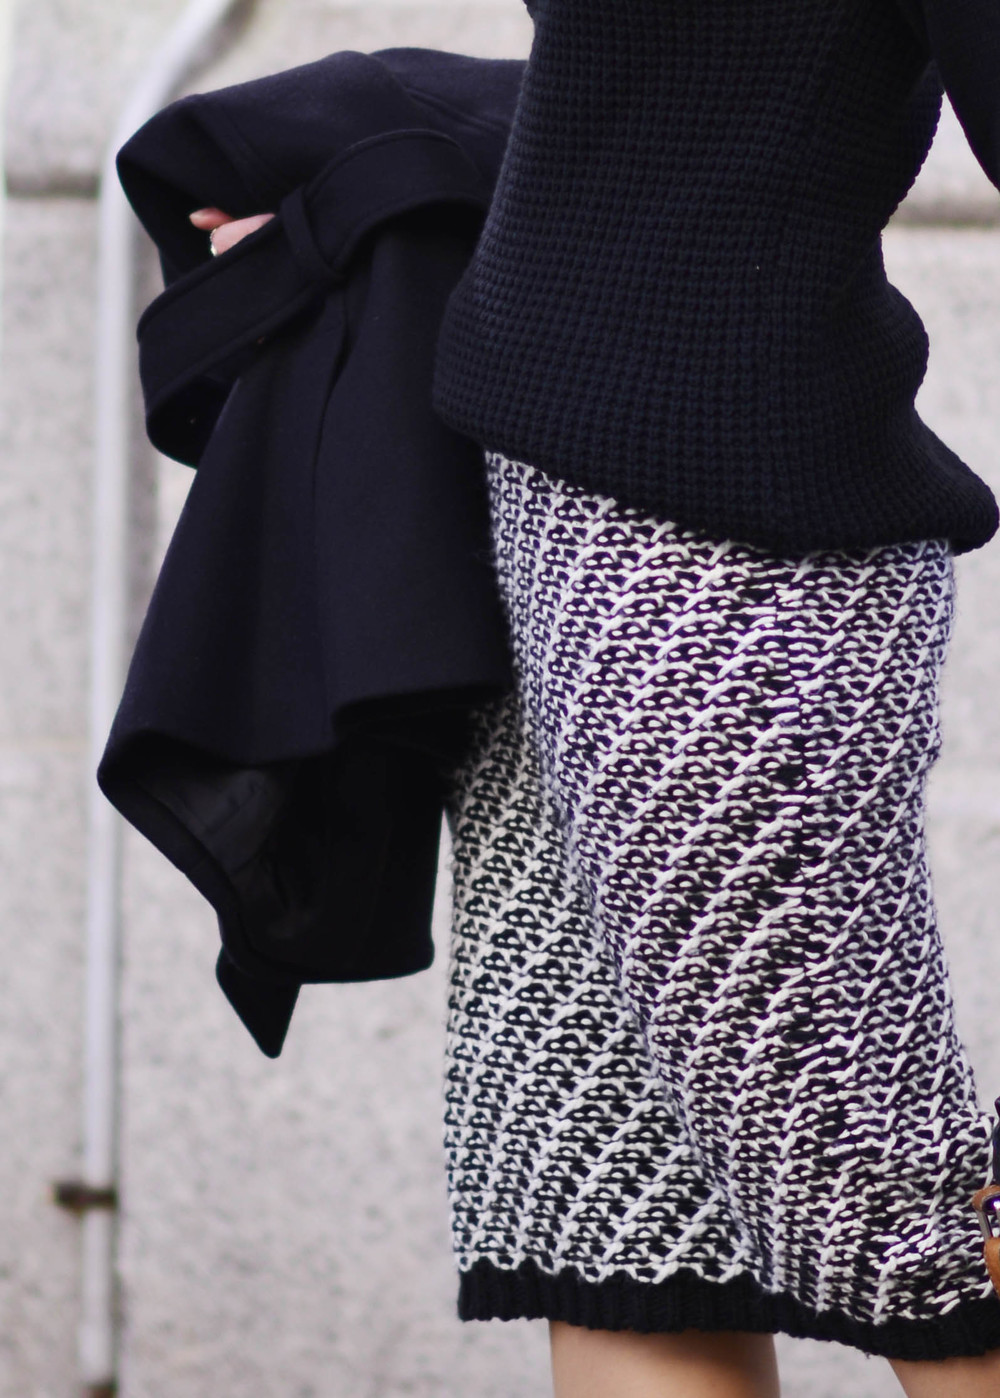 Joe Fresh knit skirt.JPG